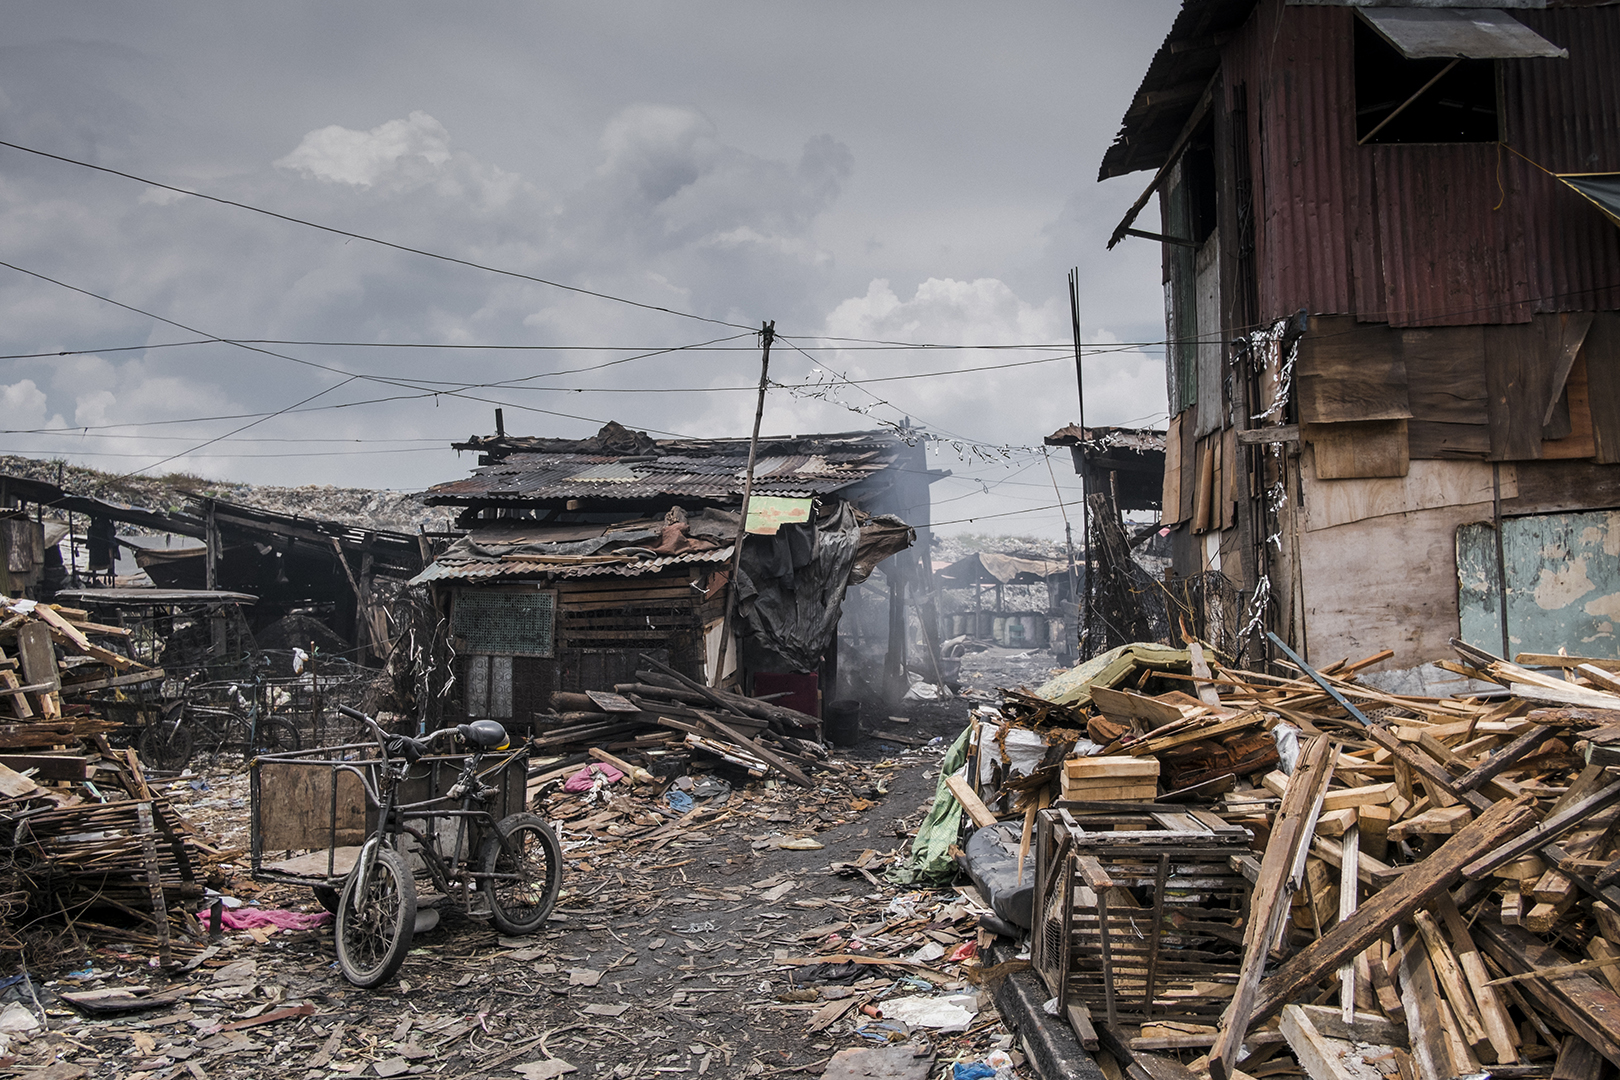 Squatter's area in Malabon City is one of the poorest and most congested slums in Metro Manila. Around 137 thousand people leave here on a surface of around 2,5 square km. Some make they living by producing toxic community made coal, others work in local businesses, as drivers or construction workers. Malabon, Philippines, 2017